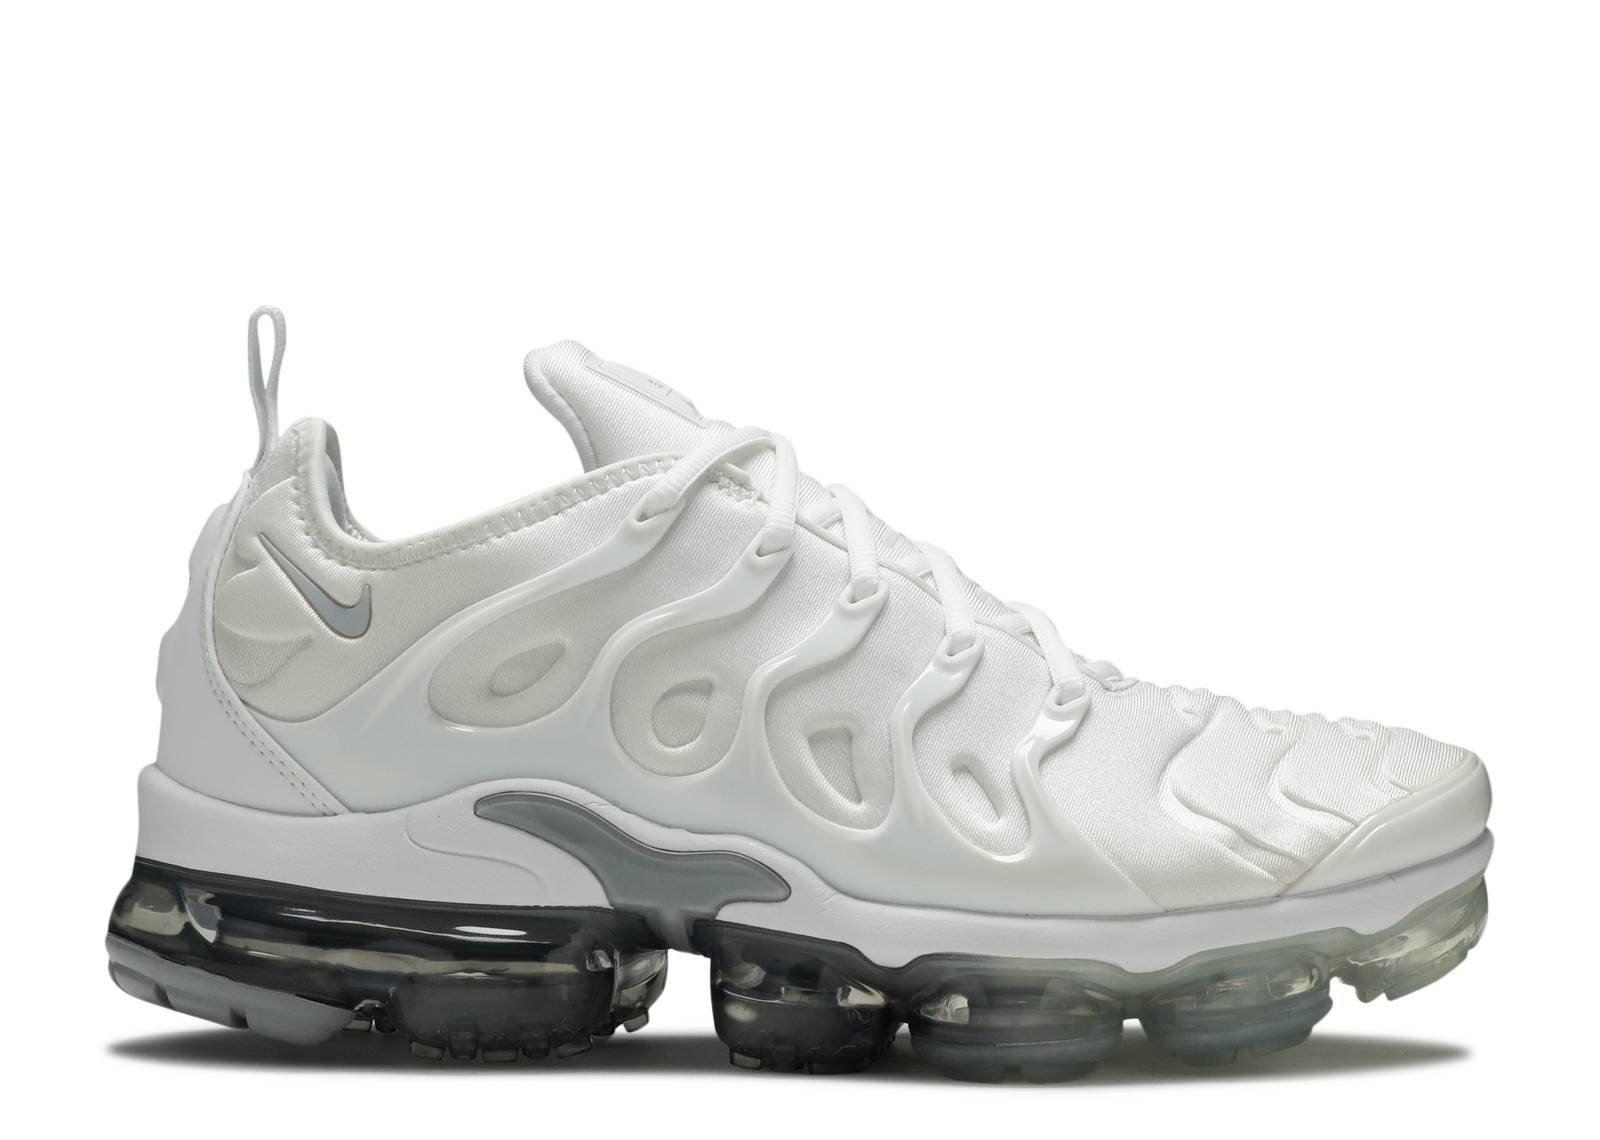 0cf2b43128 Air Vapormax Plus - Nike - 924453 102 - white/pure platinum-wolf ...